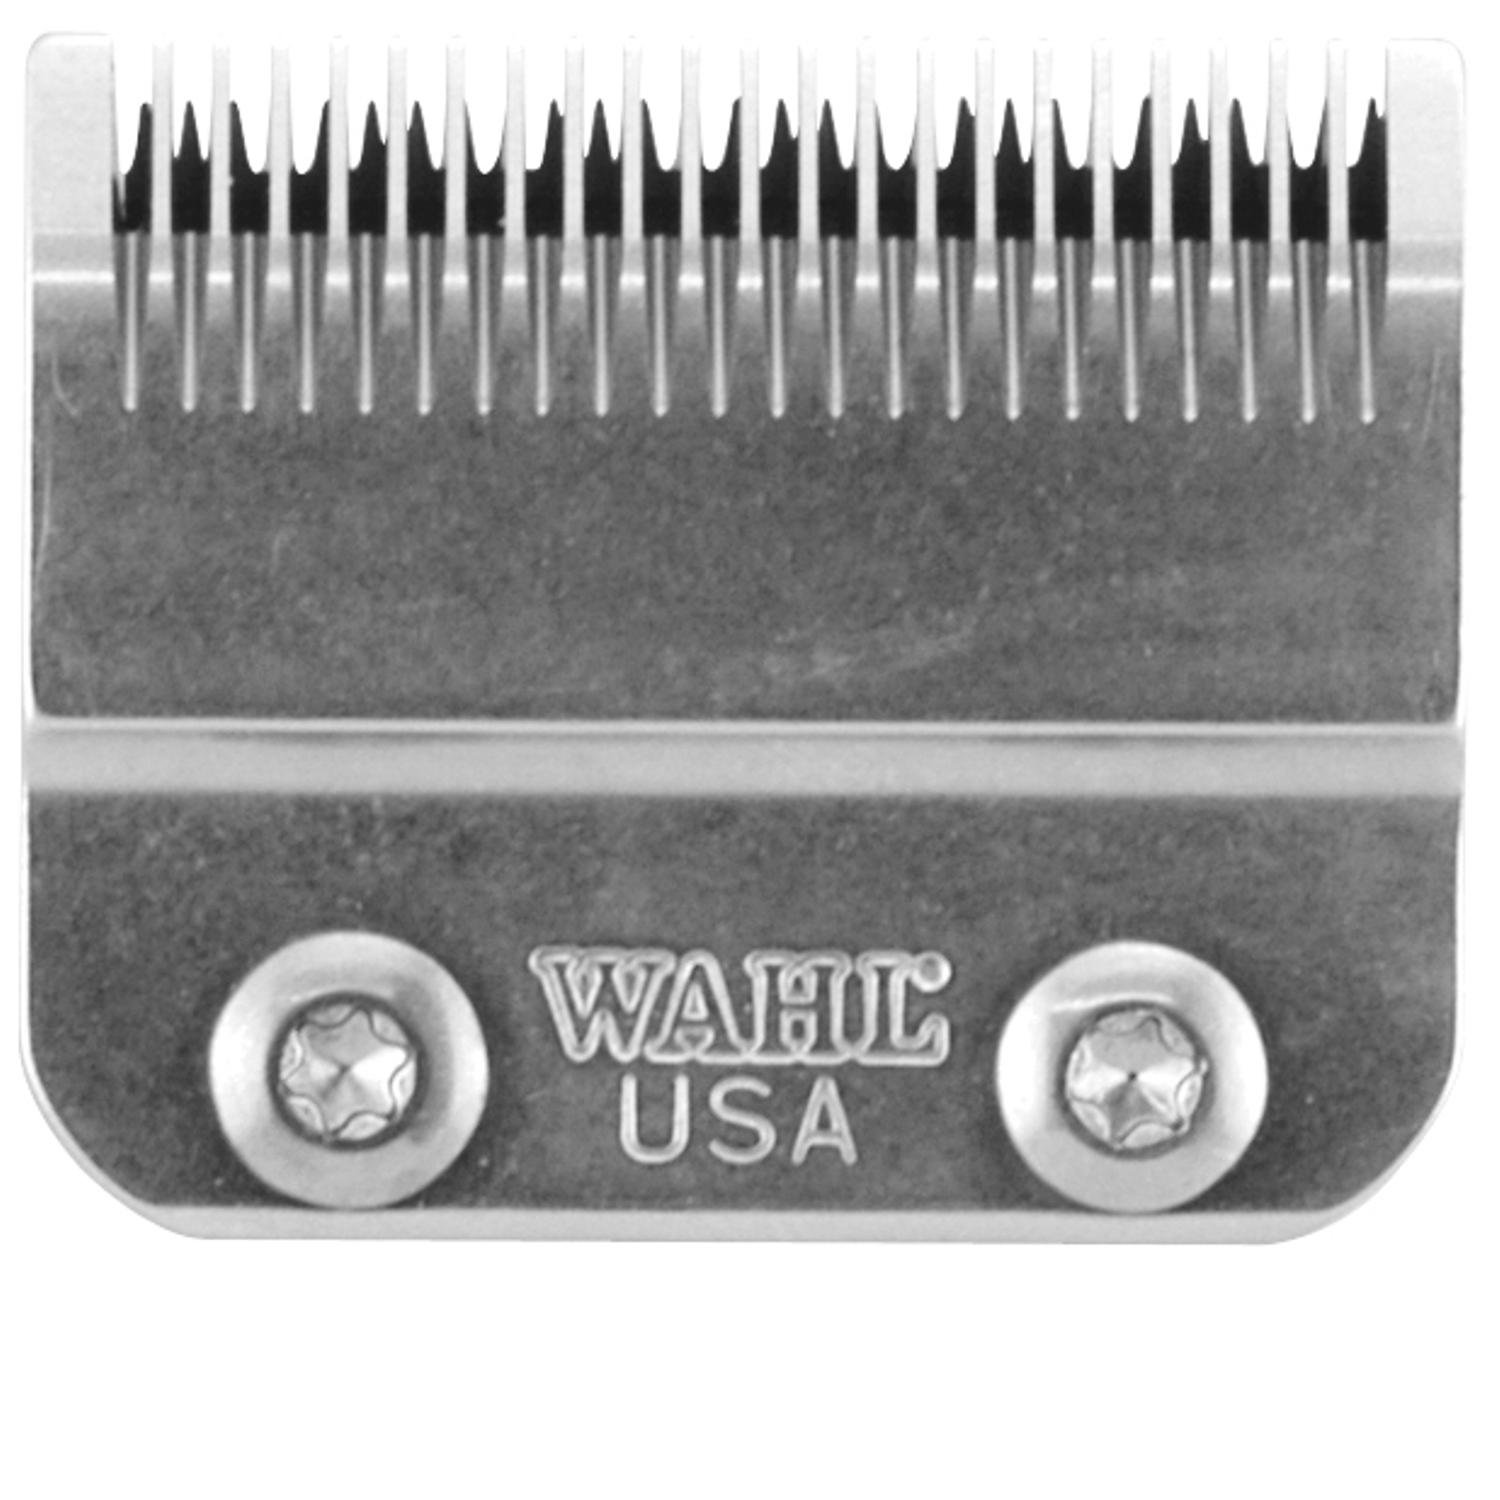 Wahl #10 Torsion Spring Replacement Blade